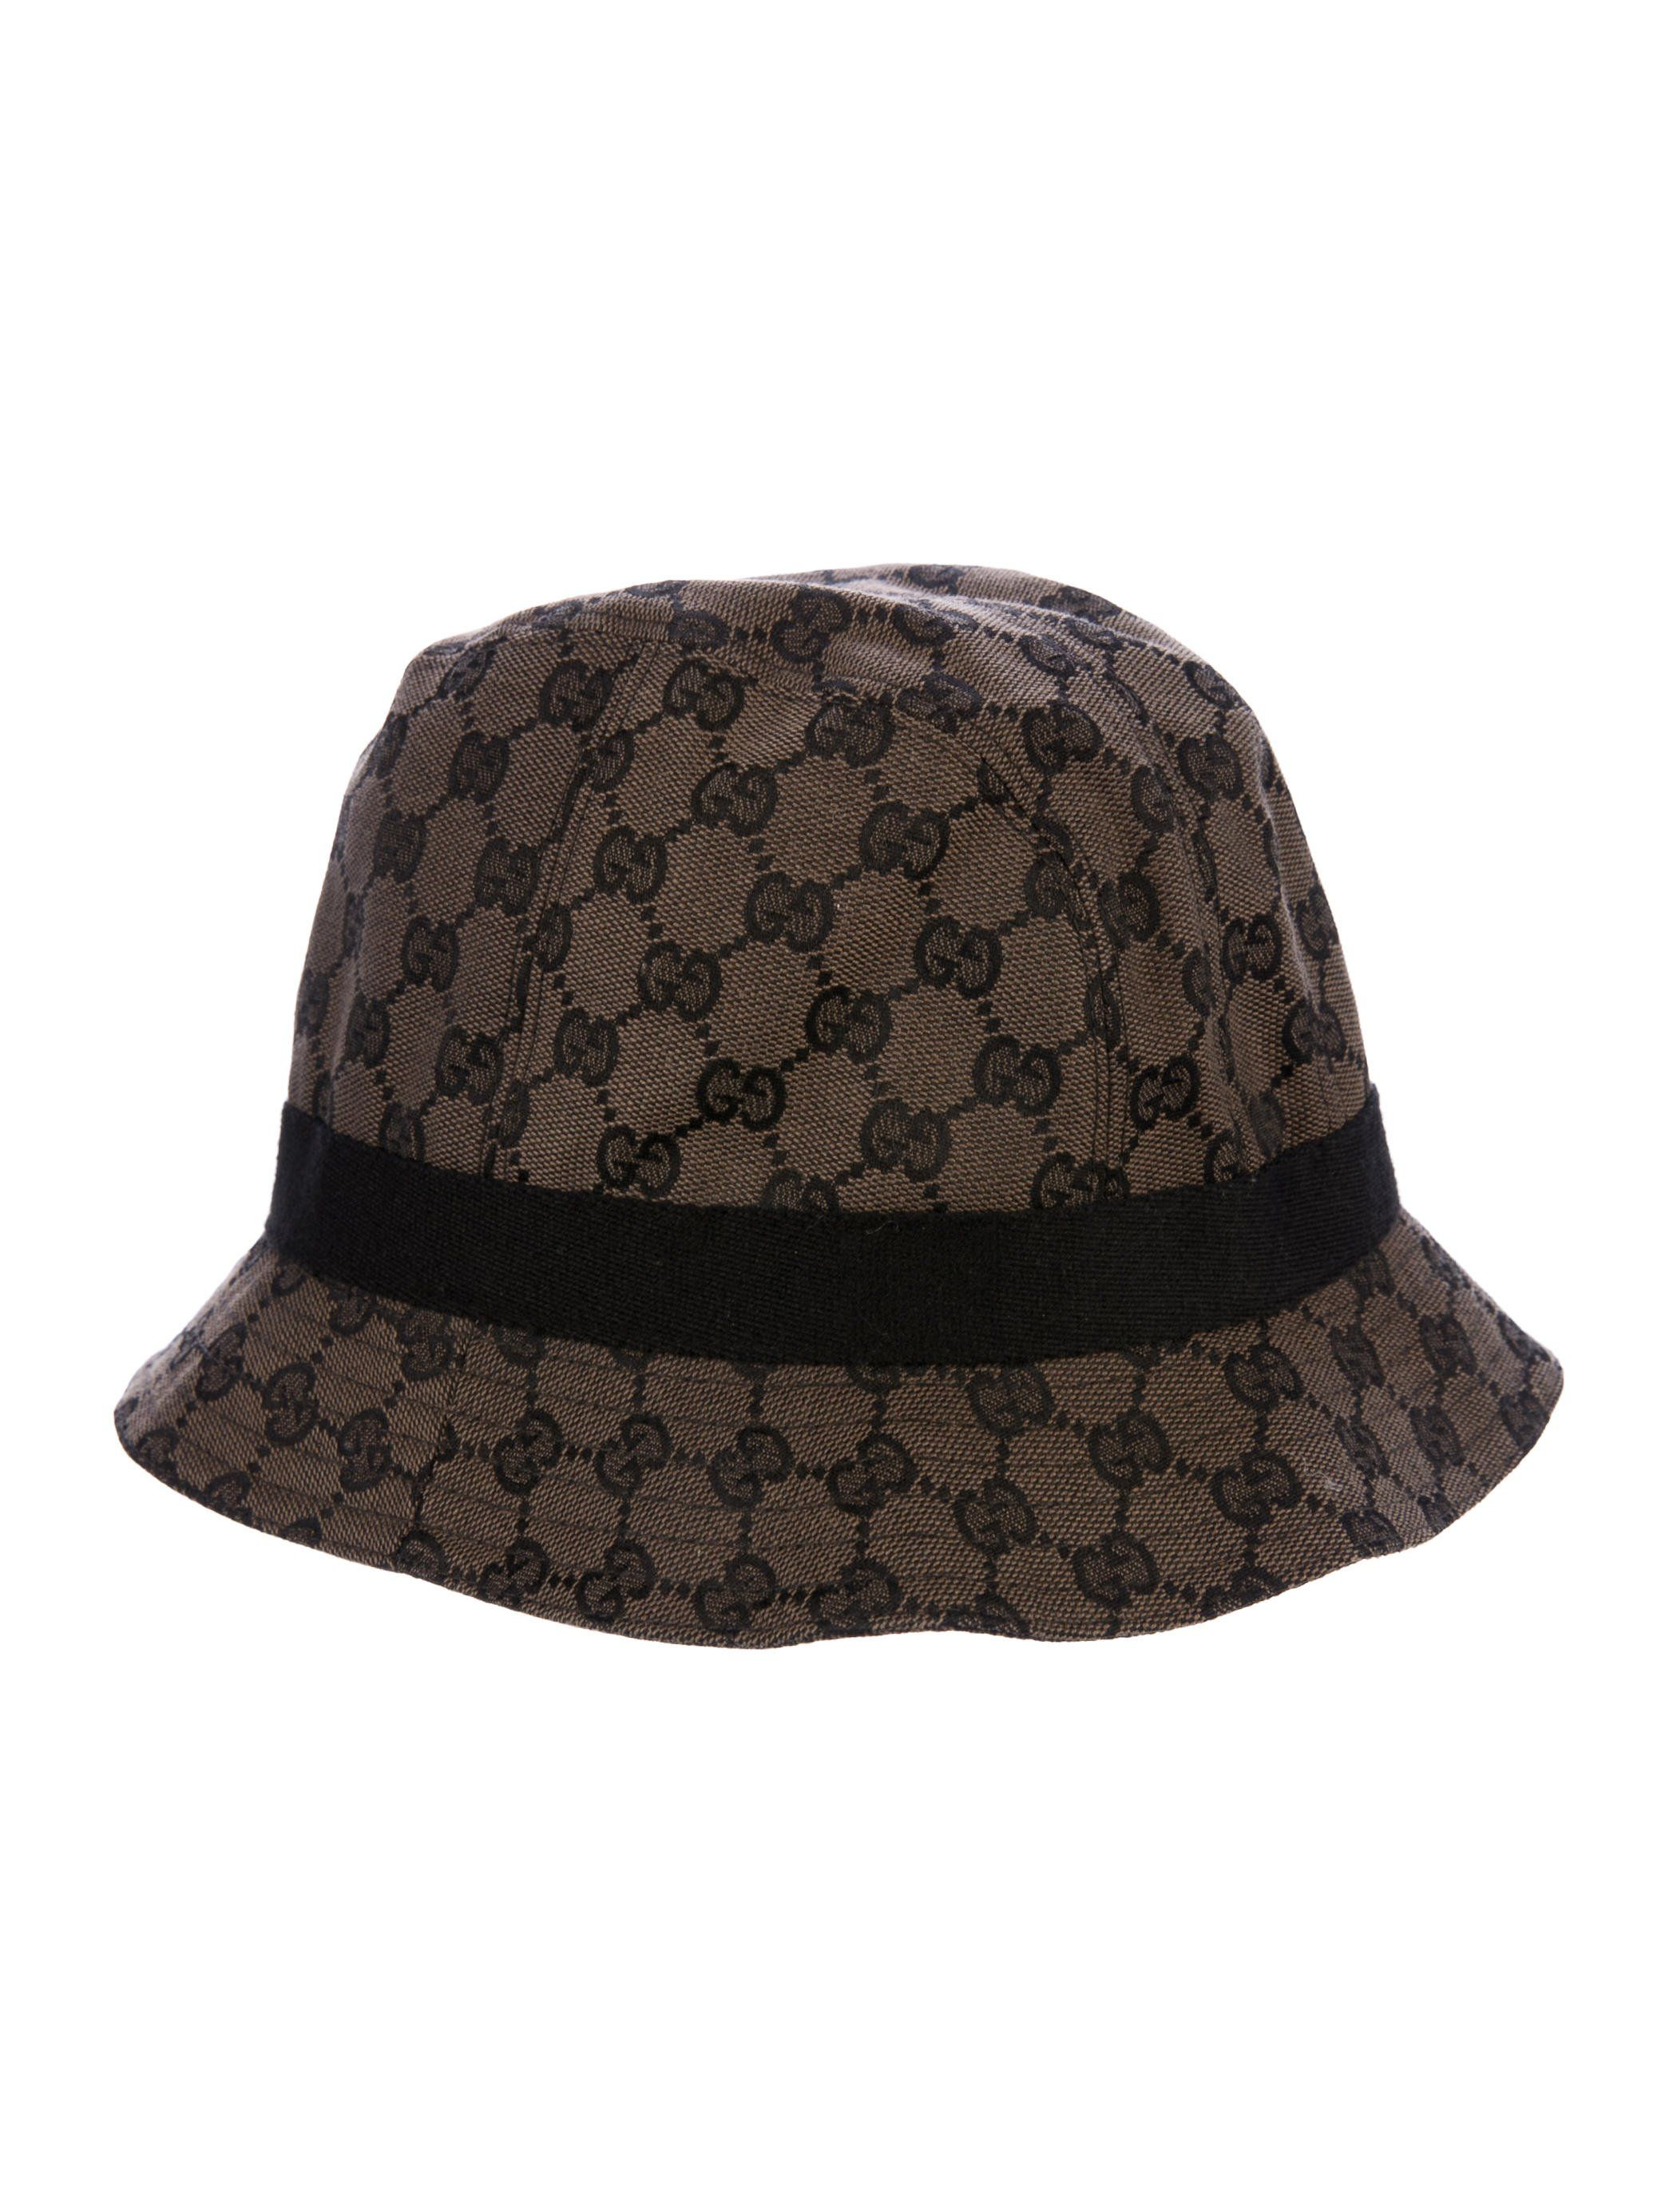 90abe9bd8f3 Black and brown Gucci jacquard bucket hat featuring GG pattern throughout  and grosgrain band.